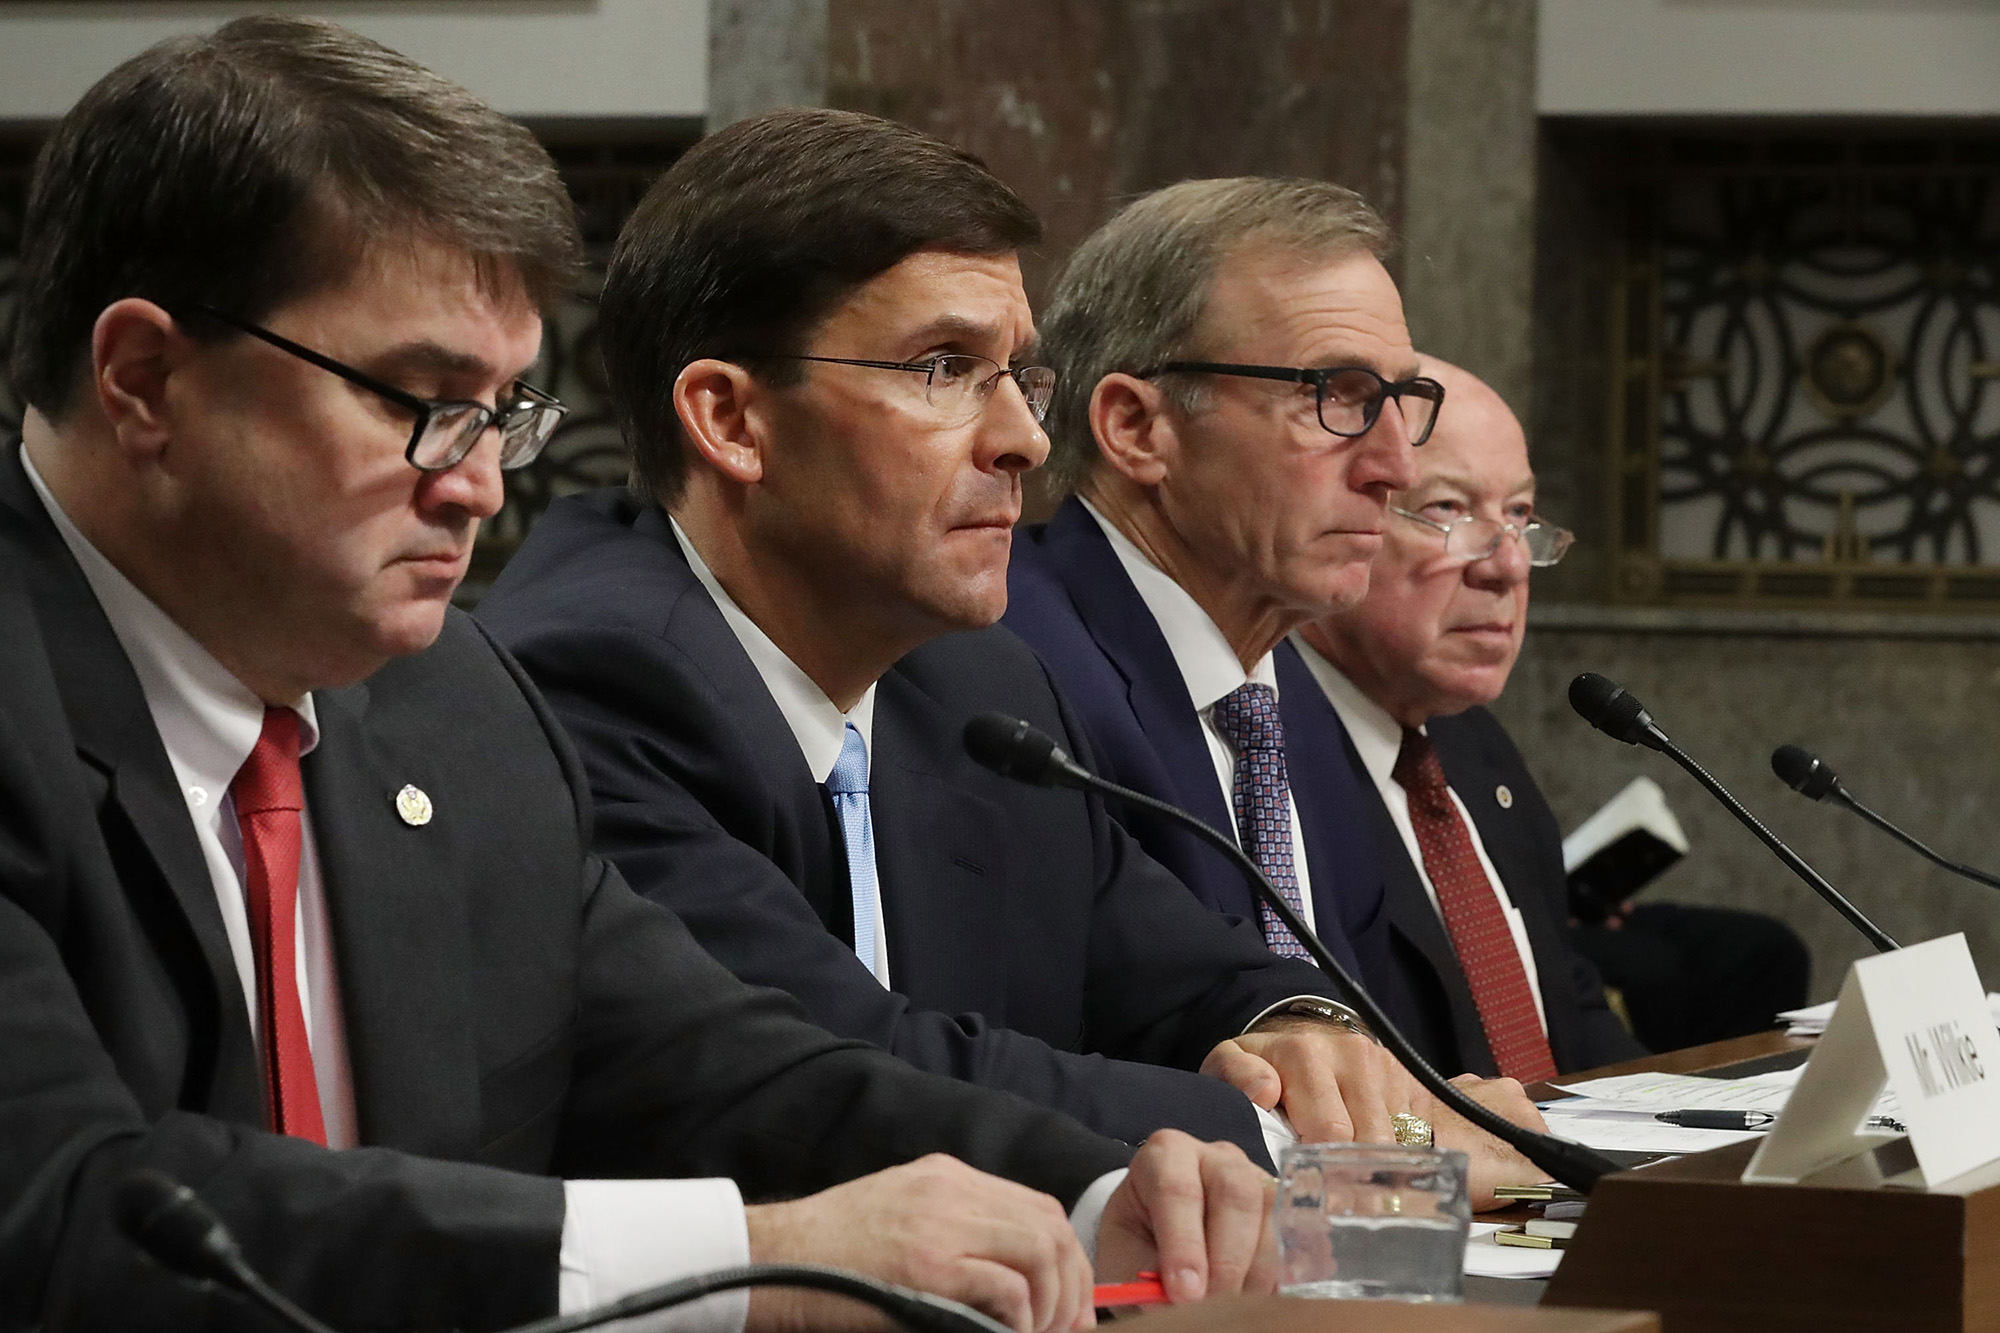 (L-R) Robert Wilkie, Mark Esper, Joseph Kernan and Guy Roberts testify before the Senate Armed Services Committee during their confirmation hearing in the Department of Defense on Capitol Hill in Washington, DC, on November 2, 2017